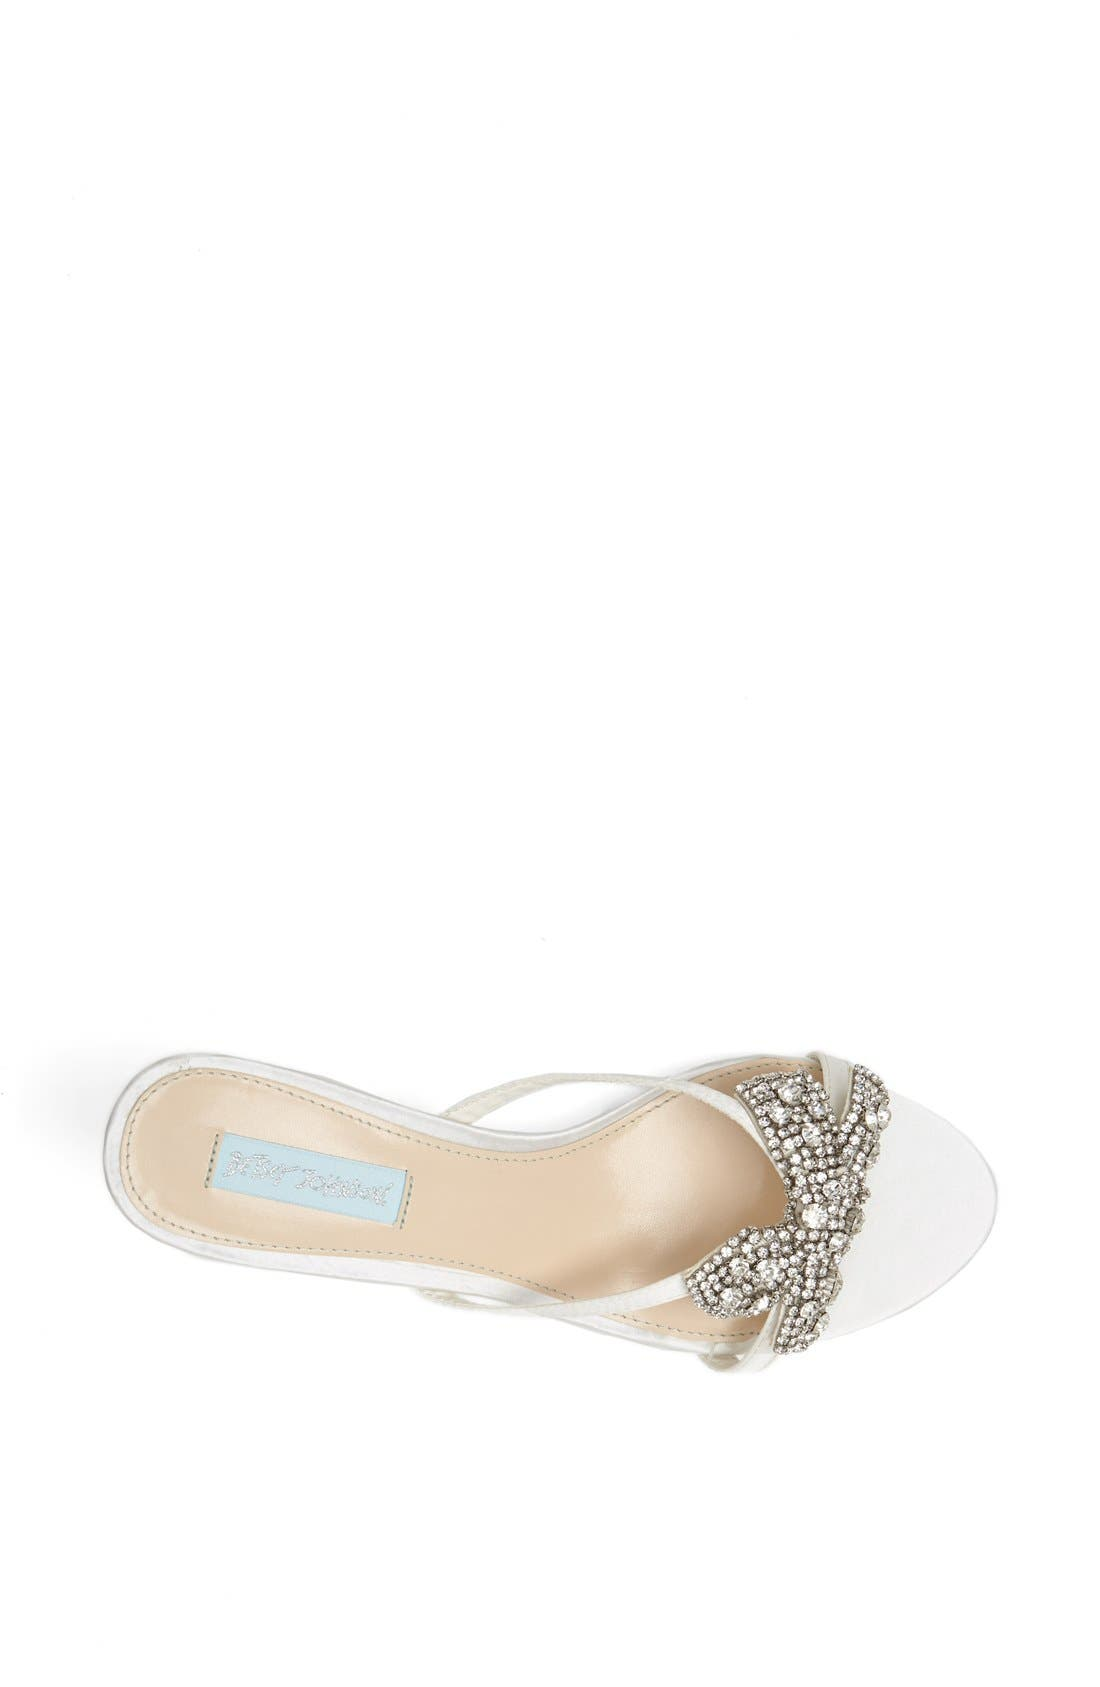 Alternate Image 3  - Betsey Johnson 'Blush' Sandal